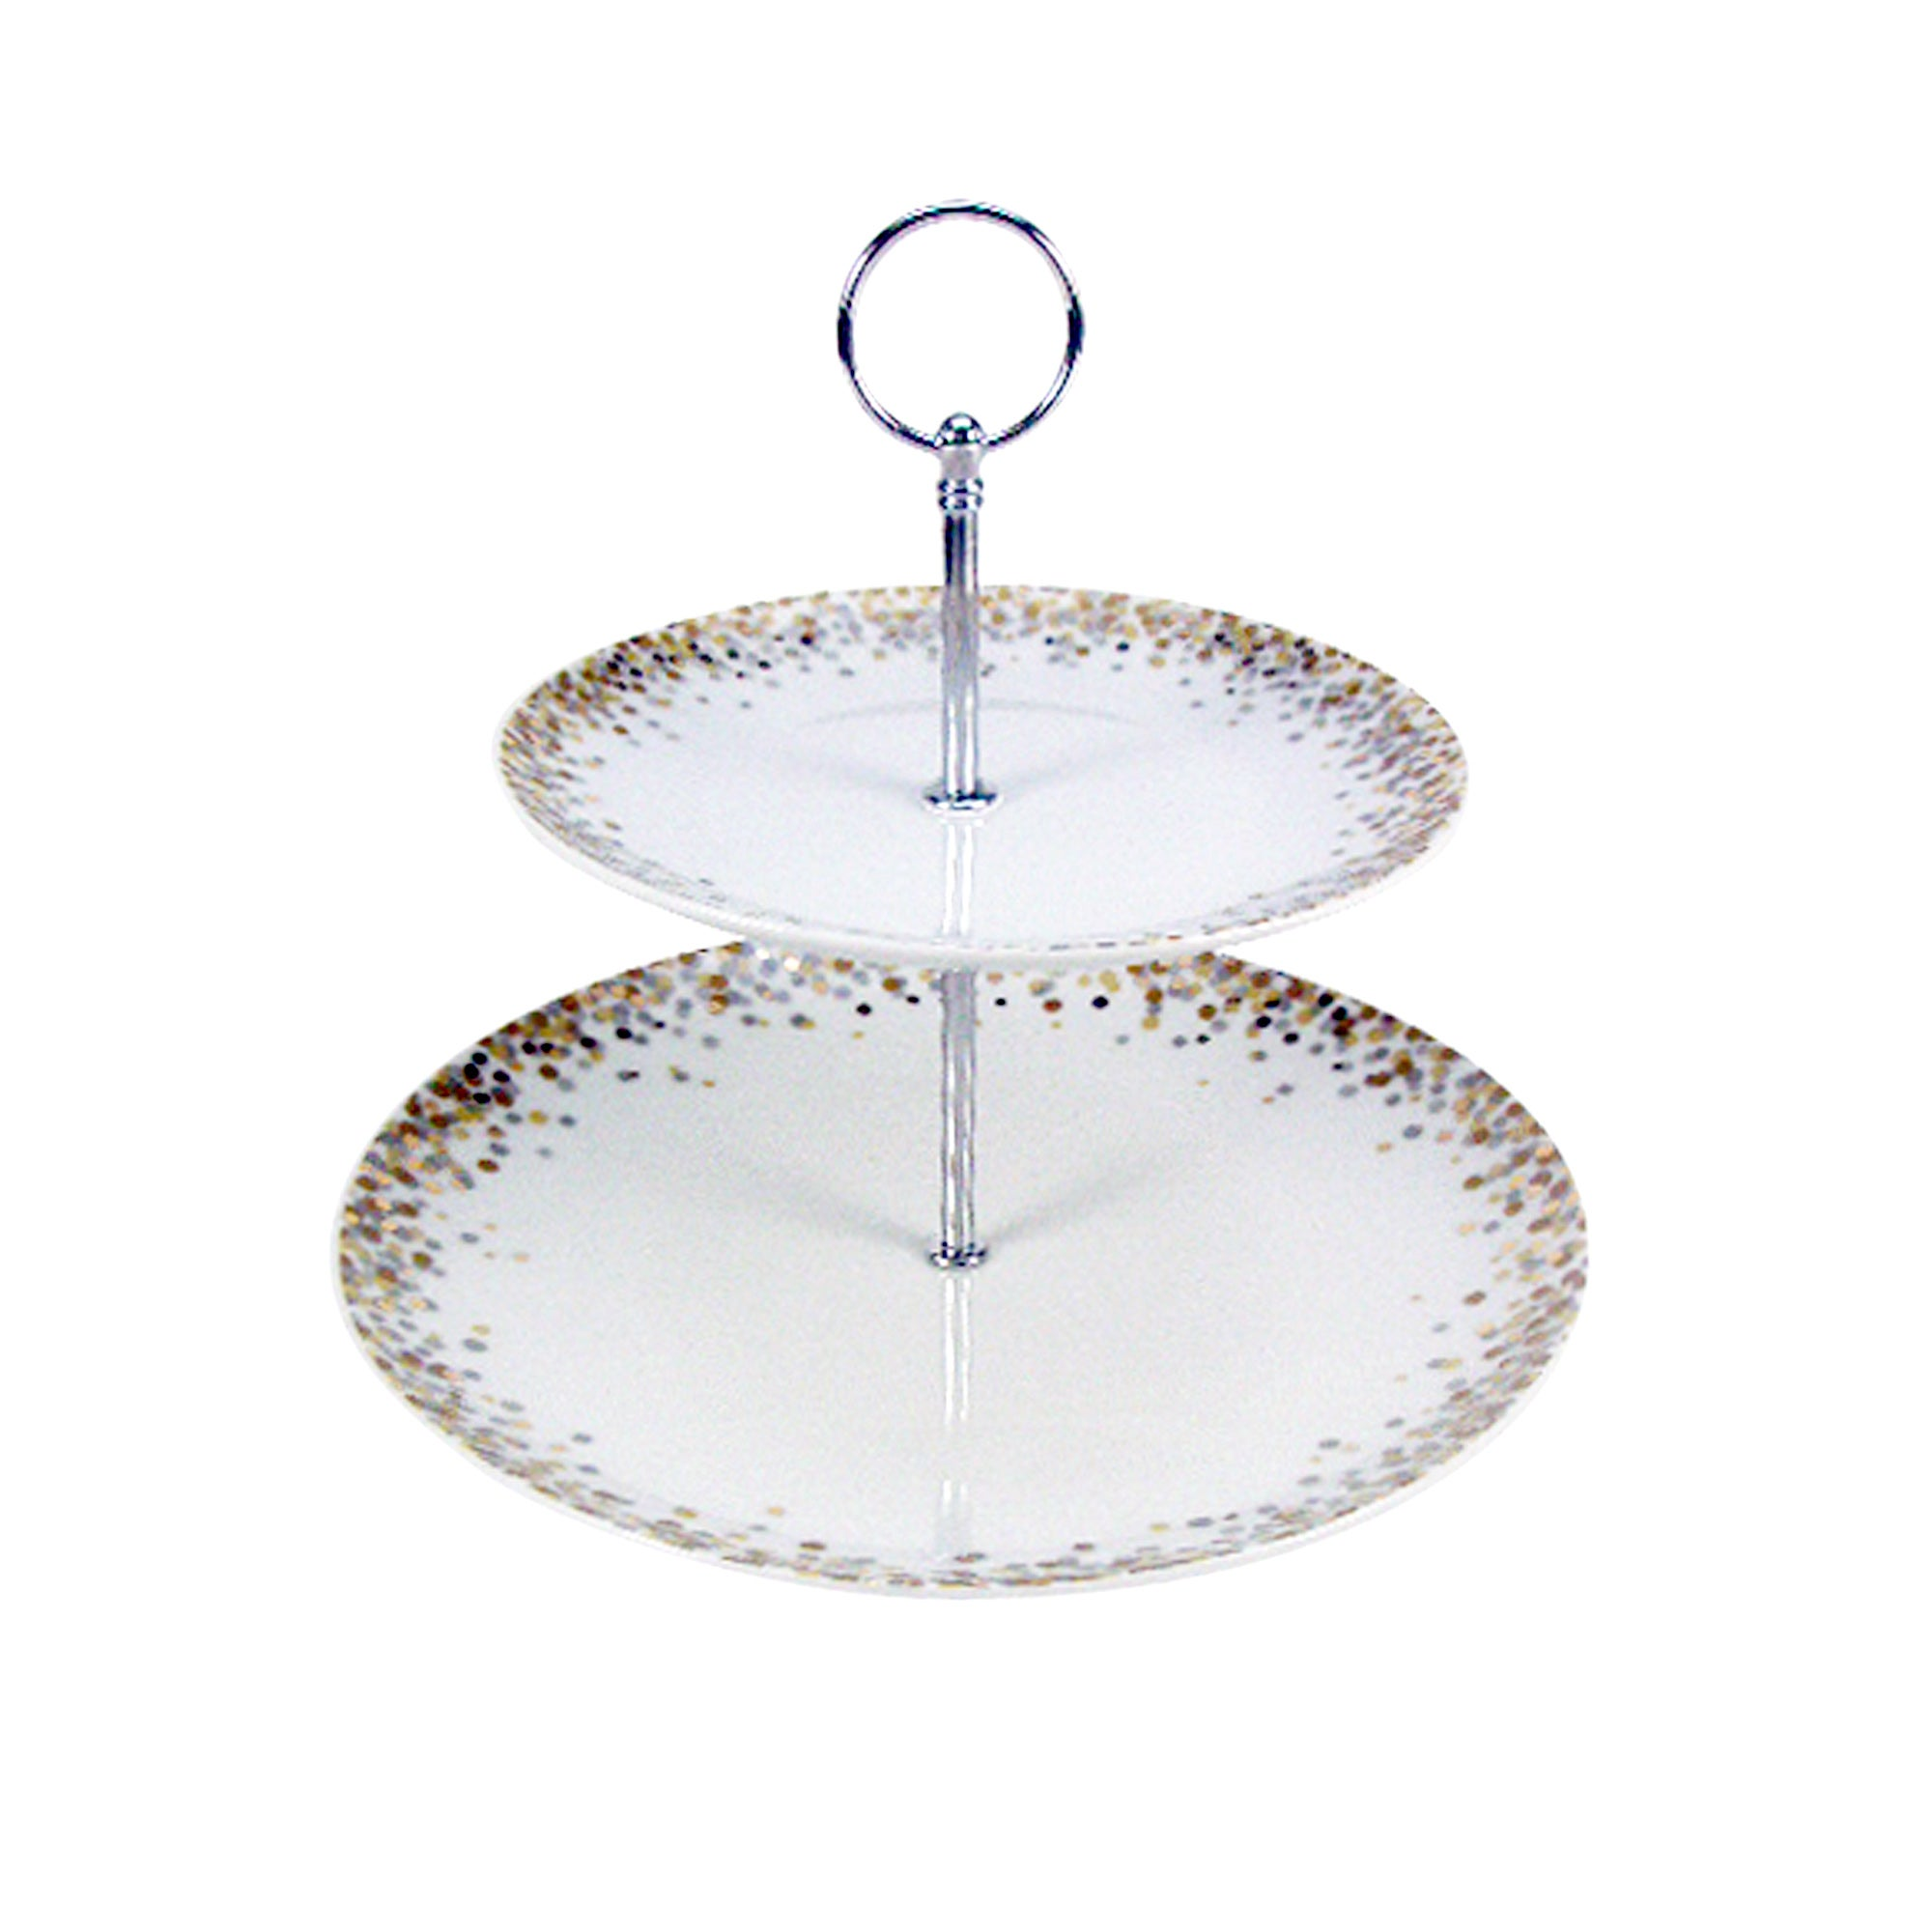 Gold Glitter Two Tier Cake Stand